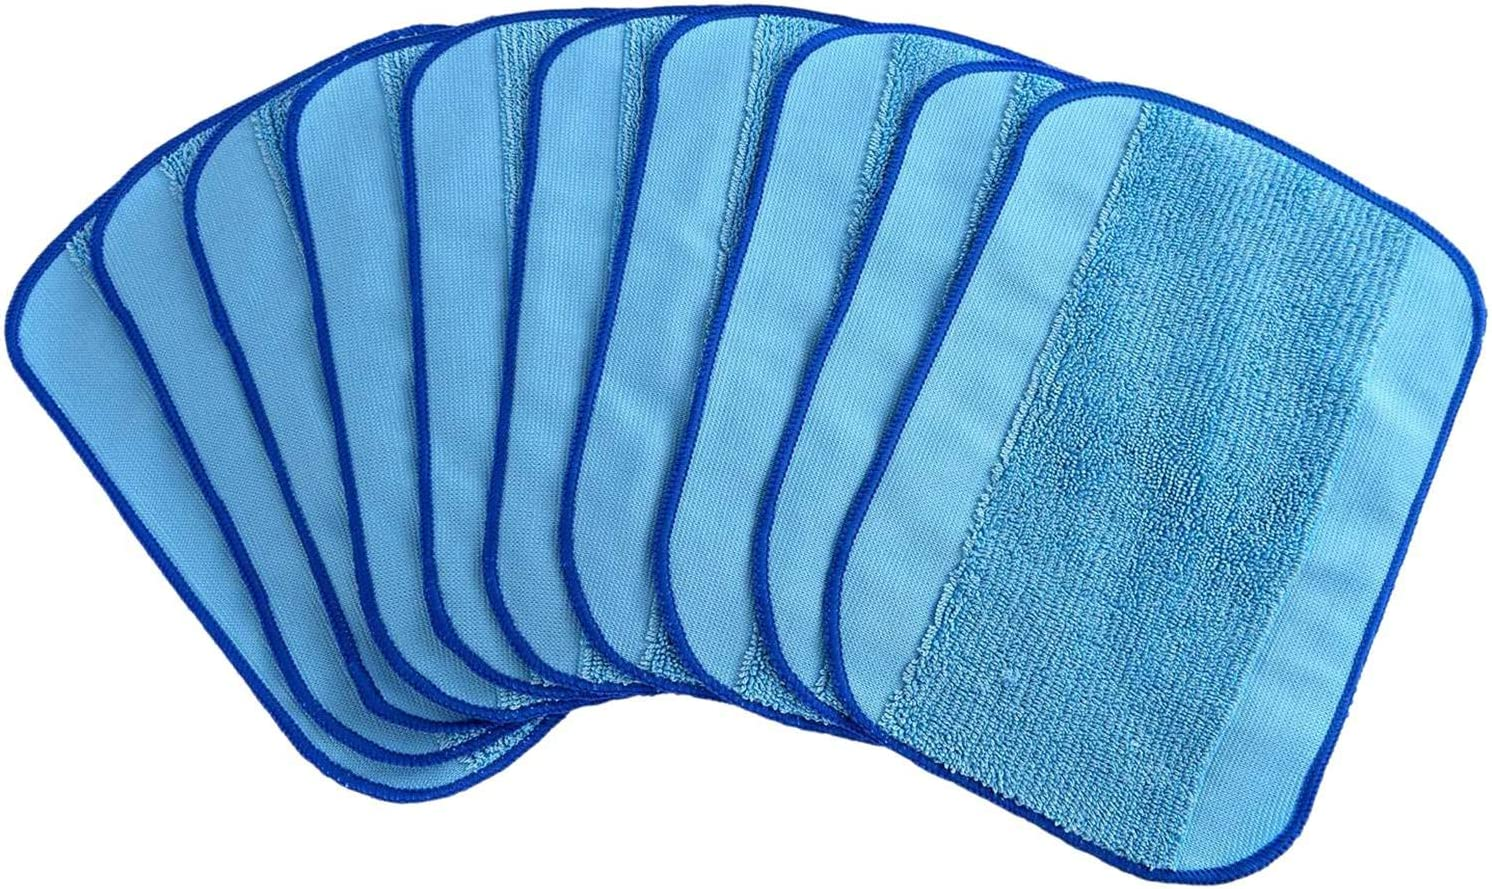 Deesen 10 Pcs Wet It is very popular Dry Microfiber Pa Reusable Mopping Cloths Bombing free shipping Mop